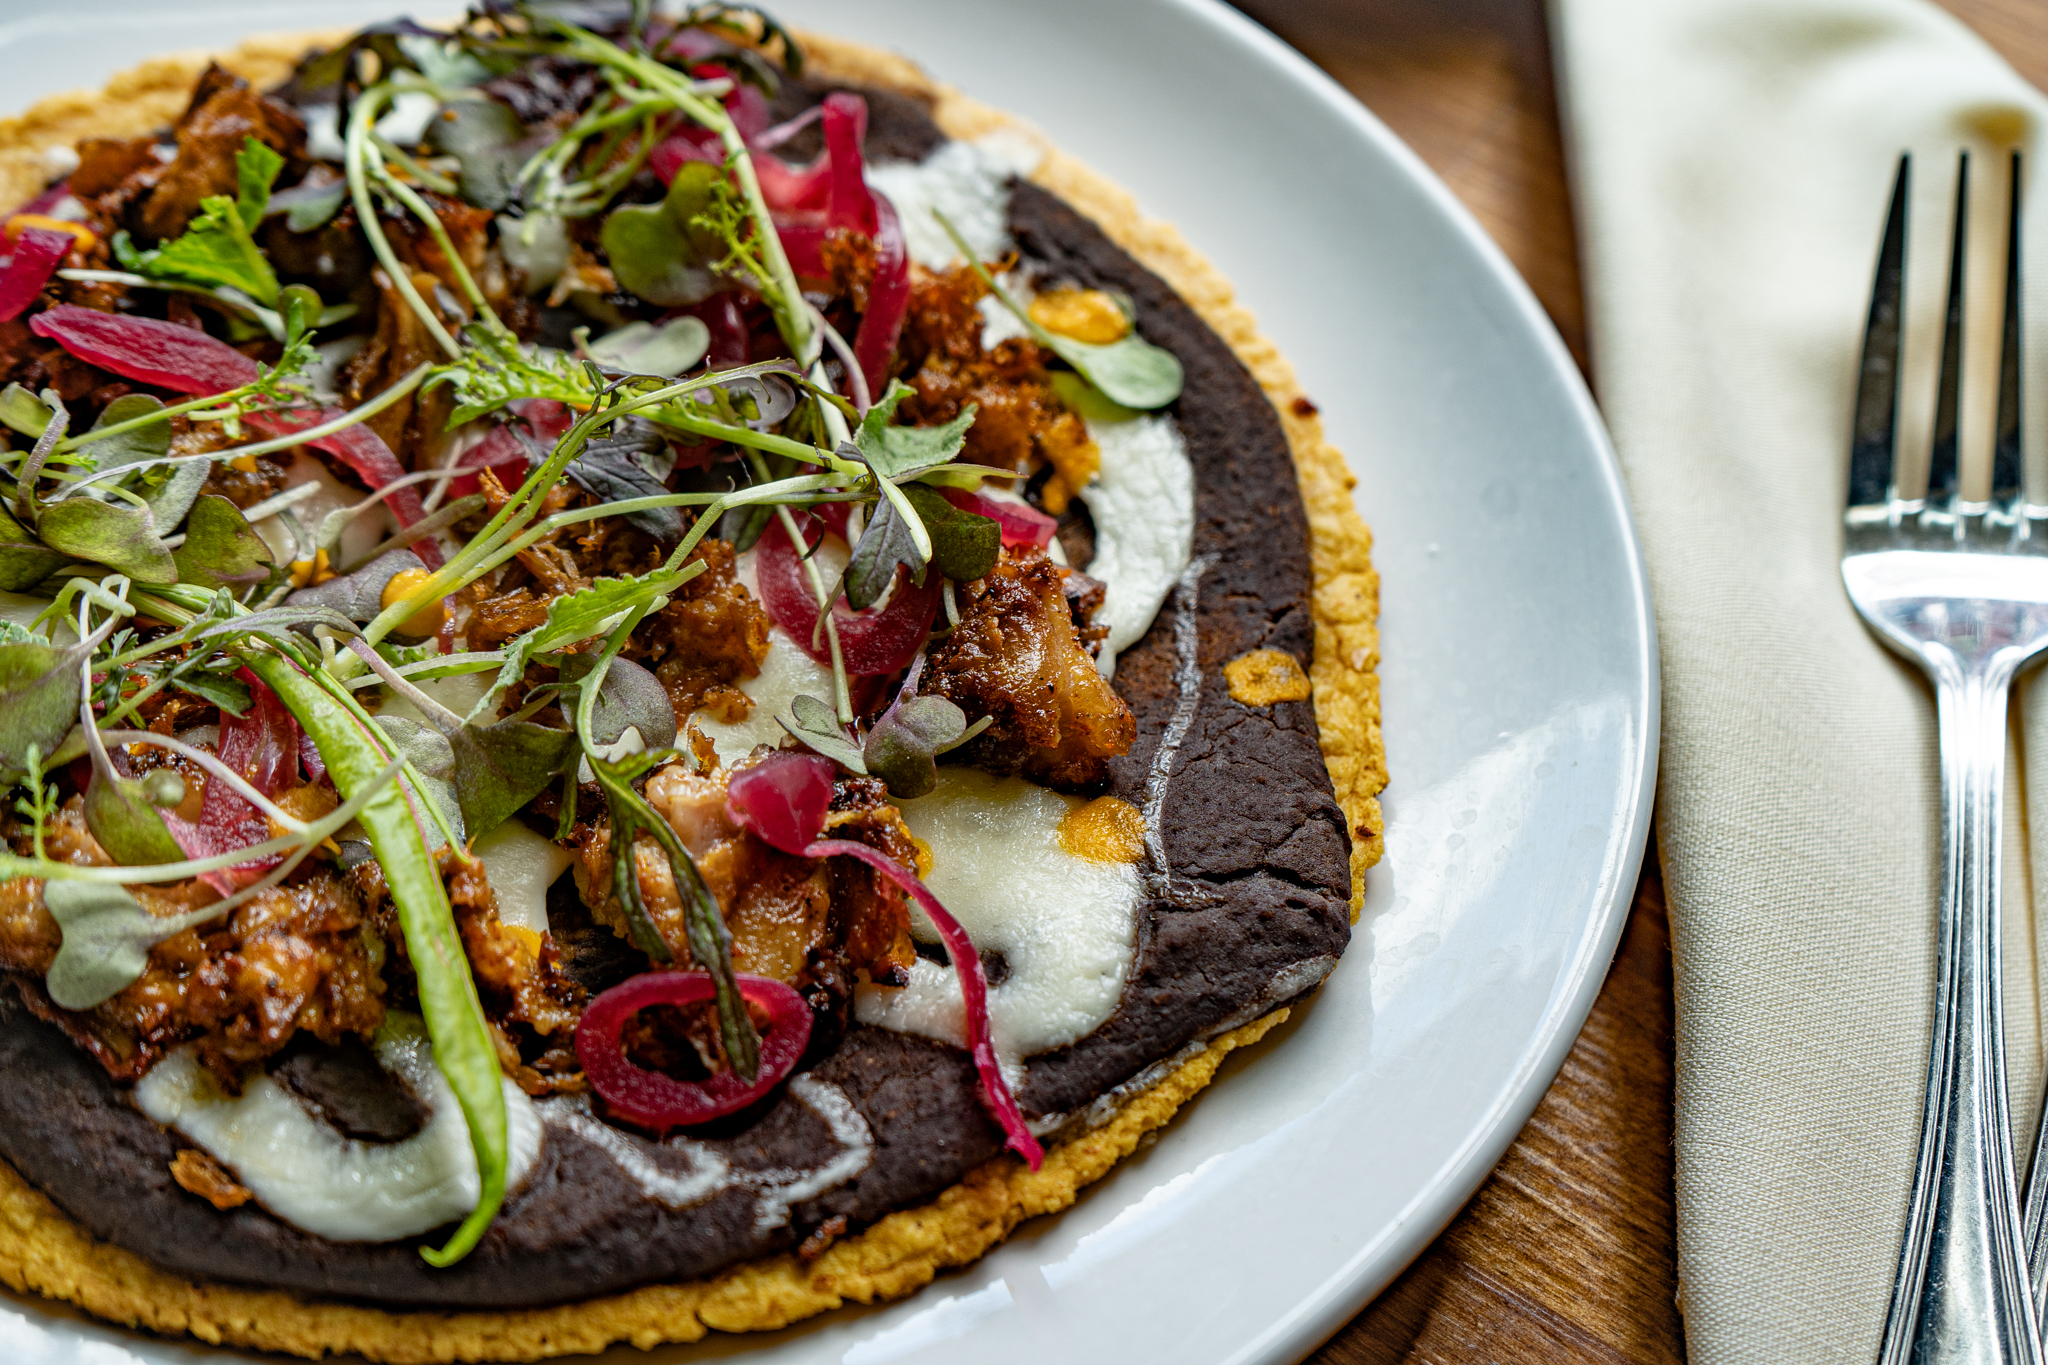 A flat tortilla topped with slow cooked pork, black beans, queso Oaxaca, annatto, citrus, pickled onions